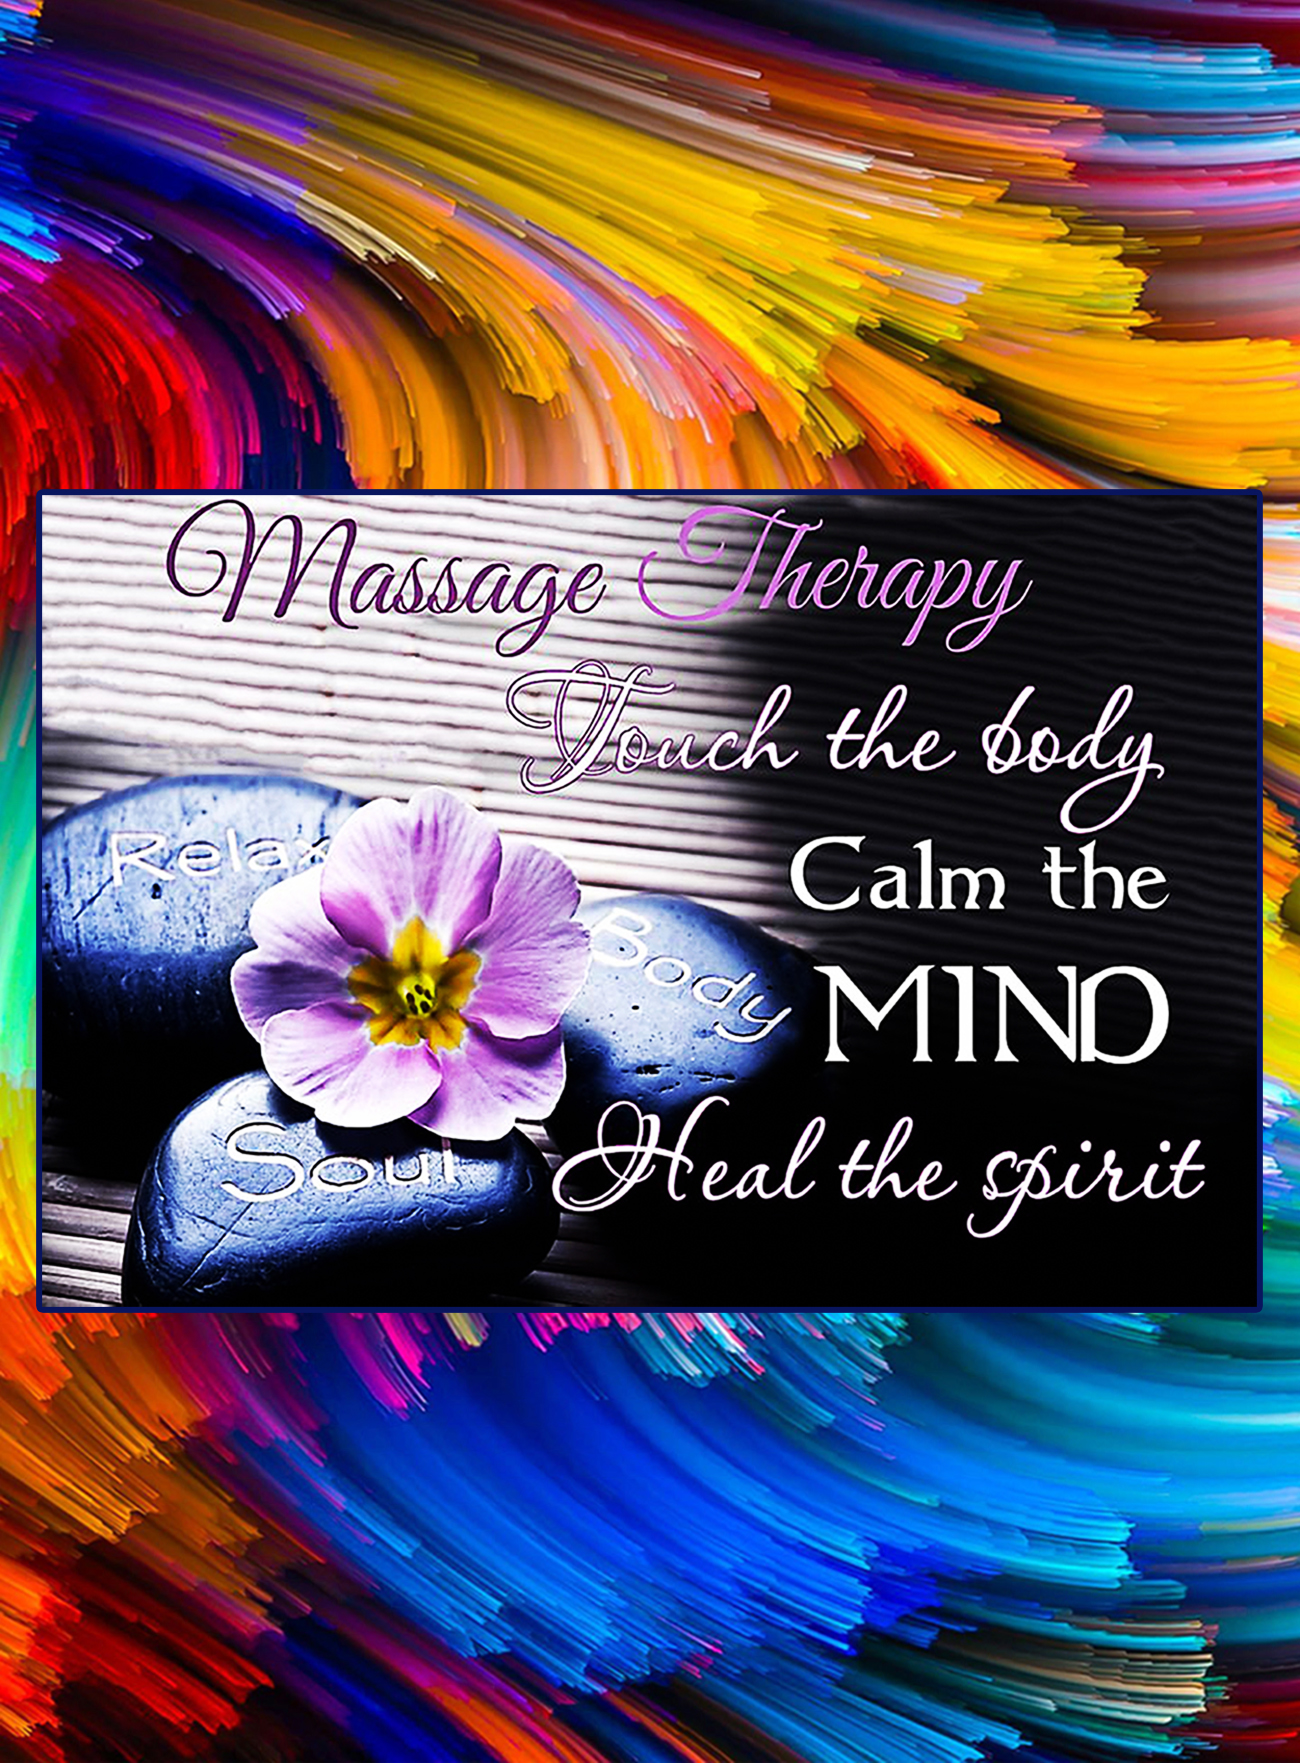 Massage therapy touch the body calm the mind heal the spirit poster - A1